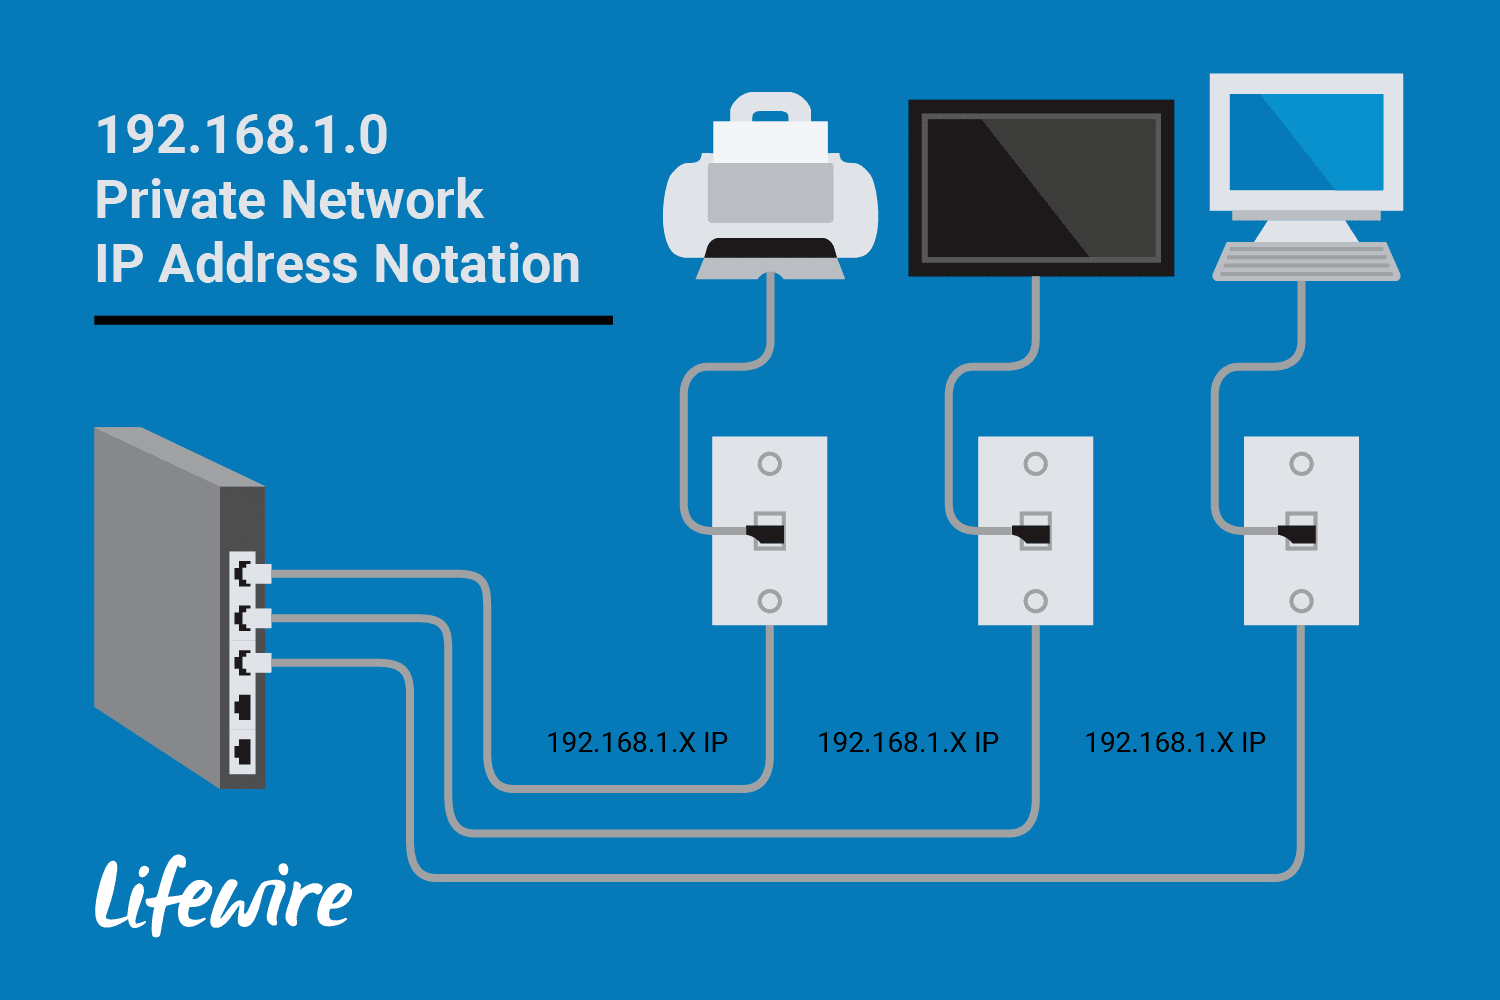 192.168.1.0 Private Network IP Address Notation